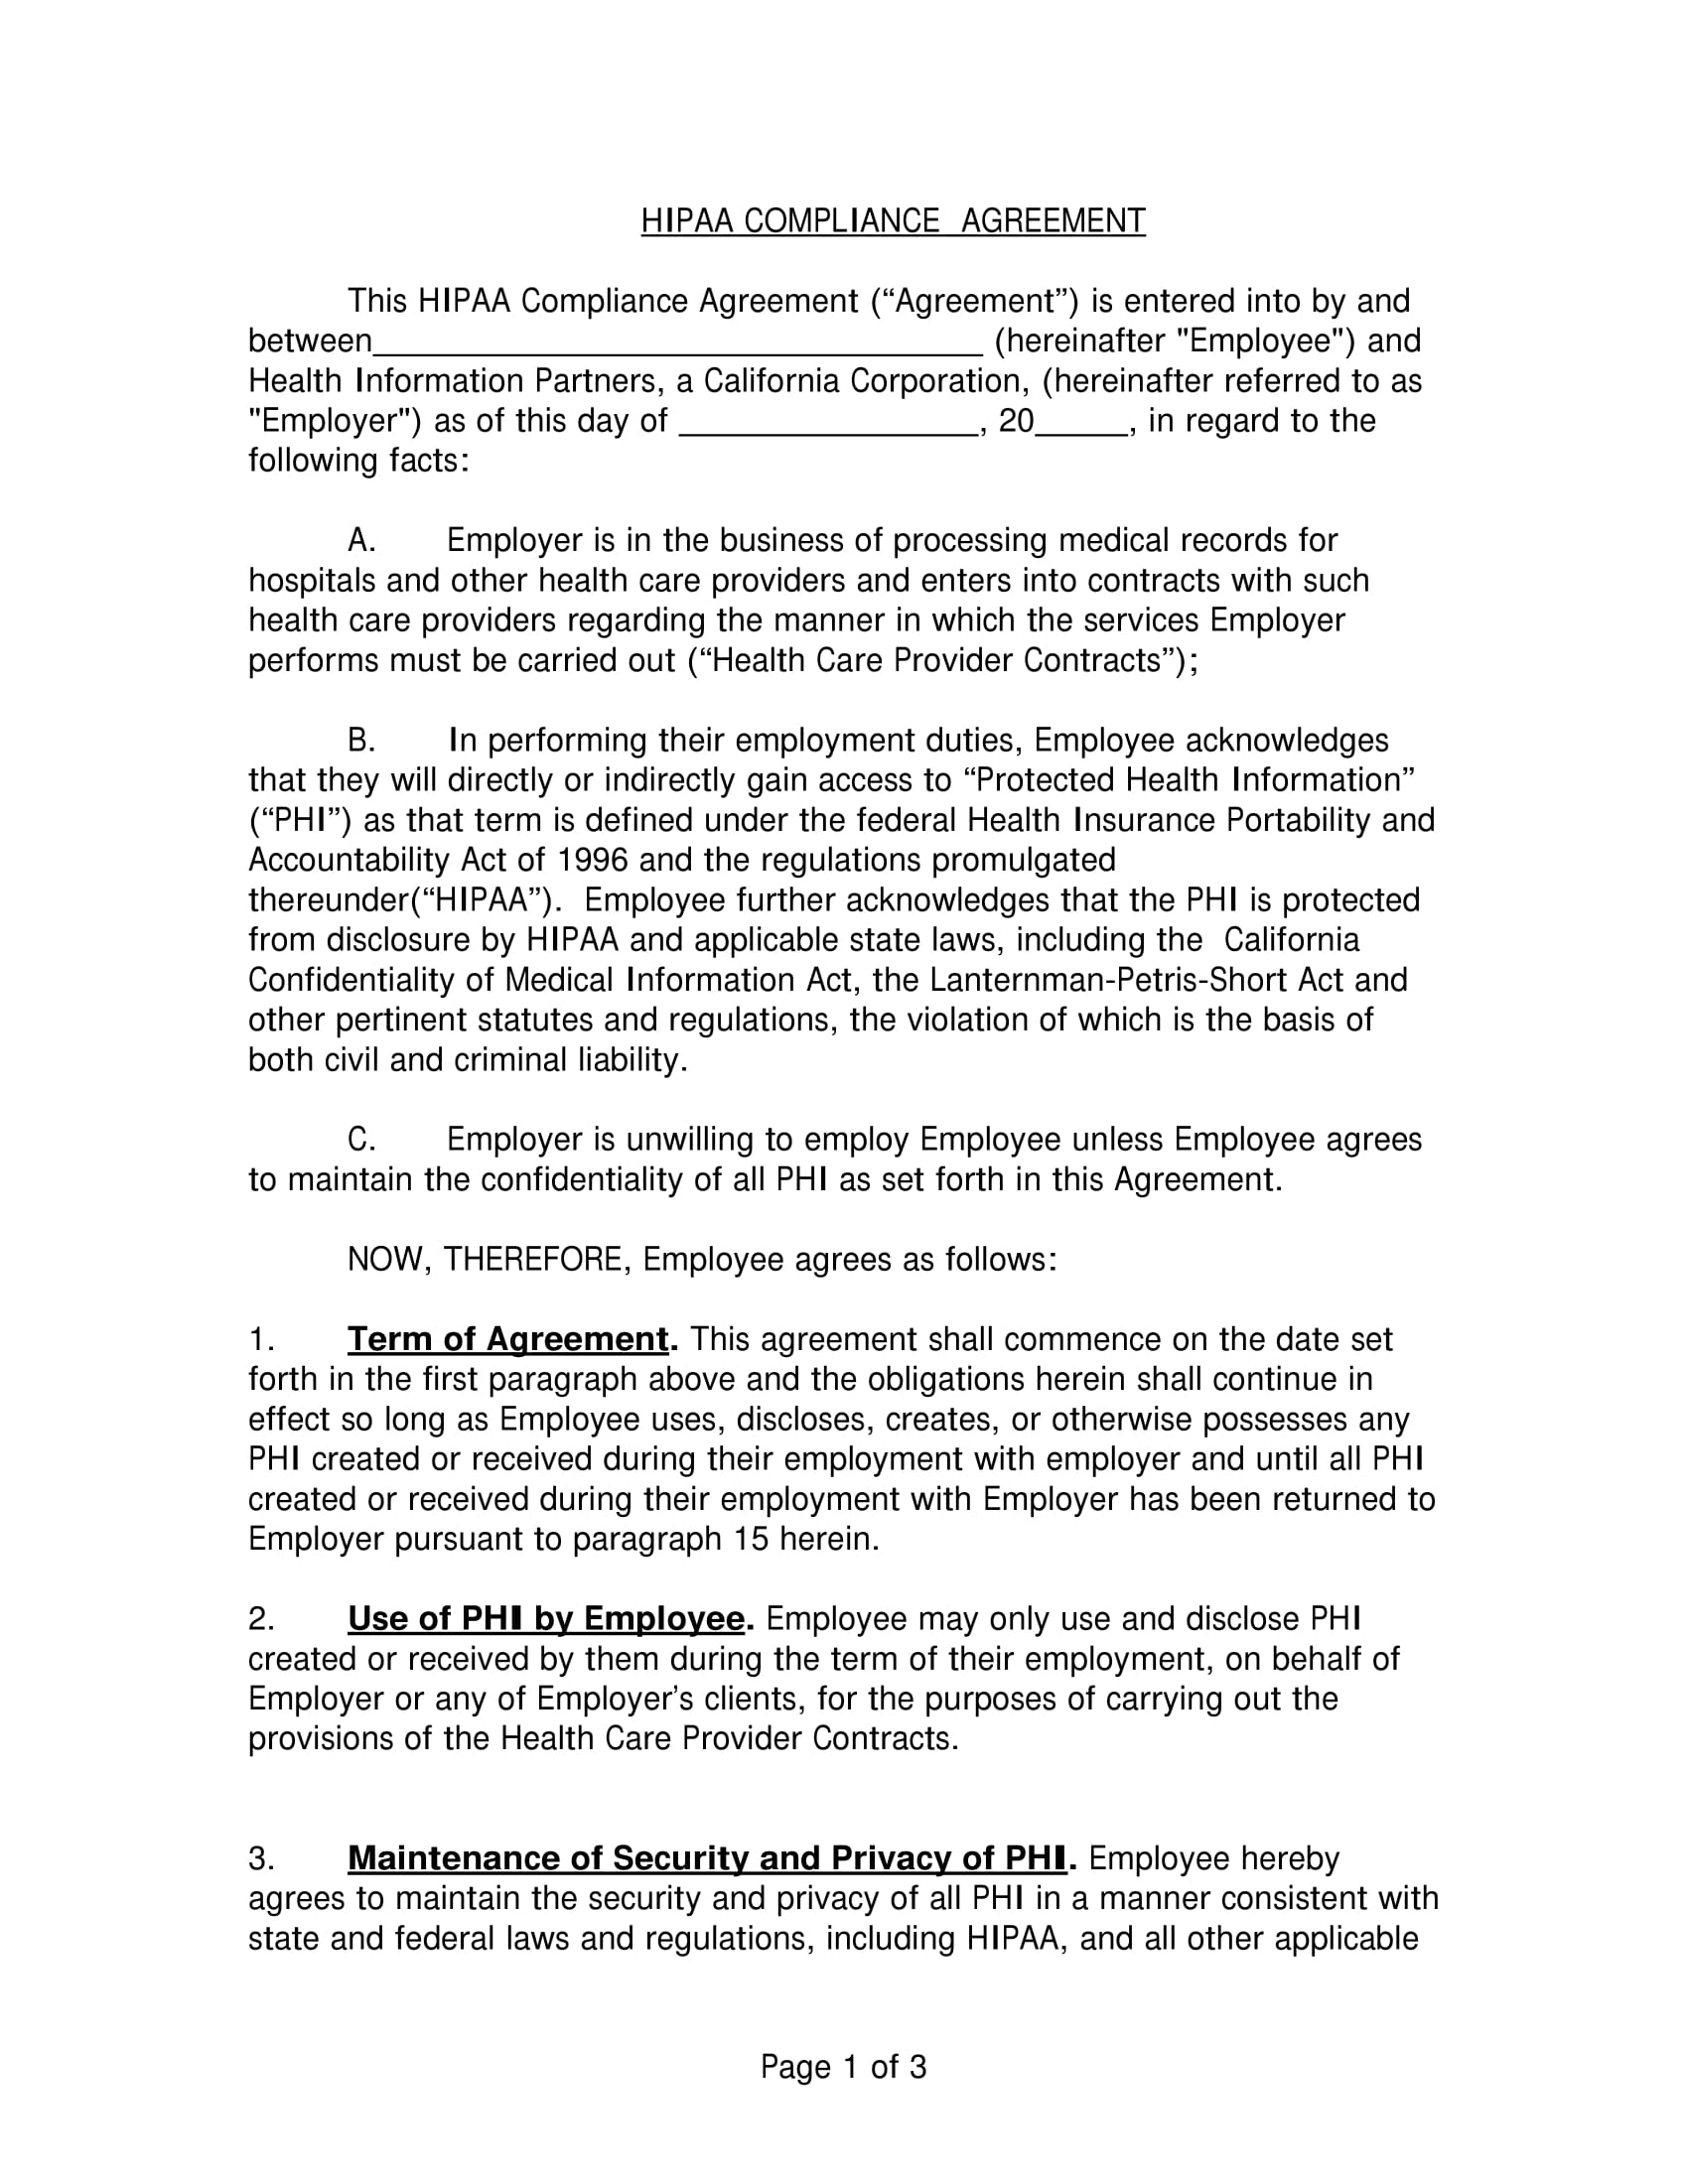 hipaa compliance agreement example 1